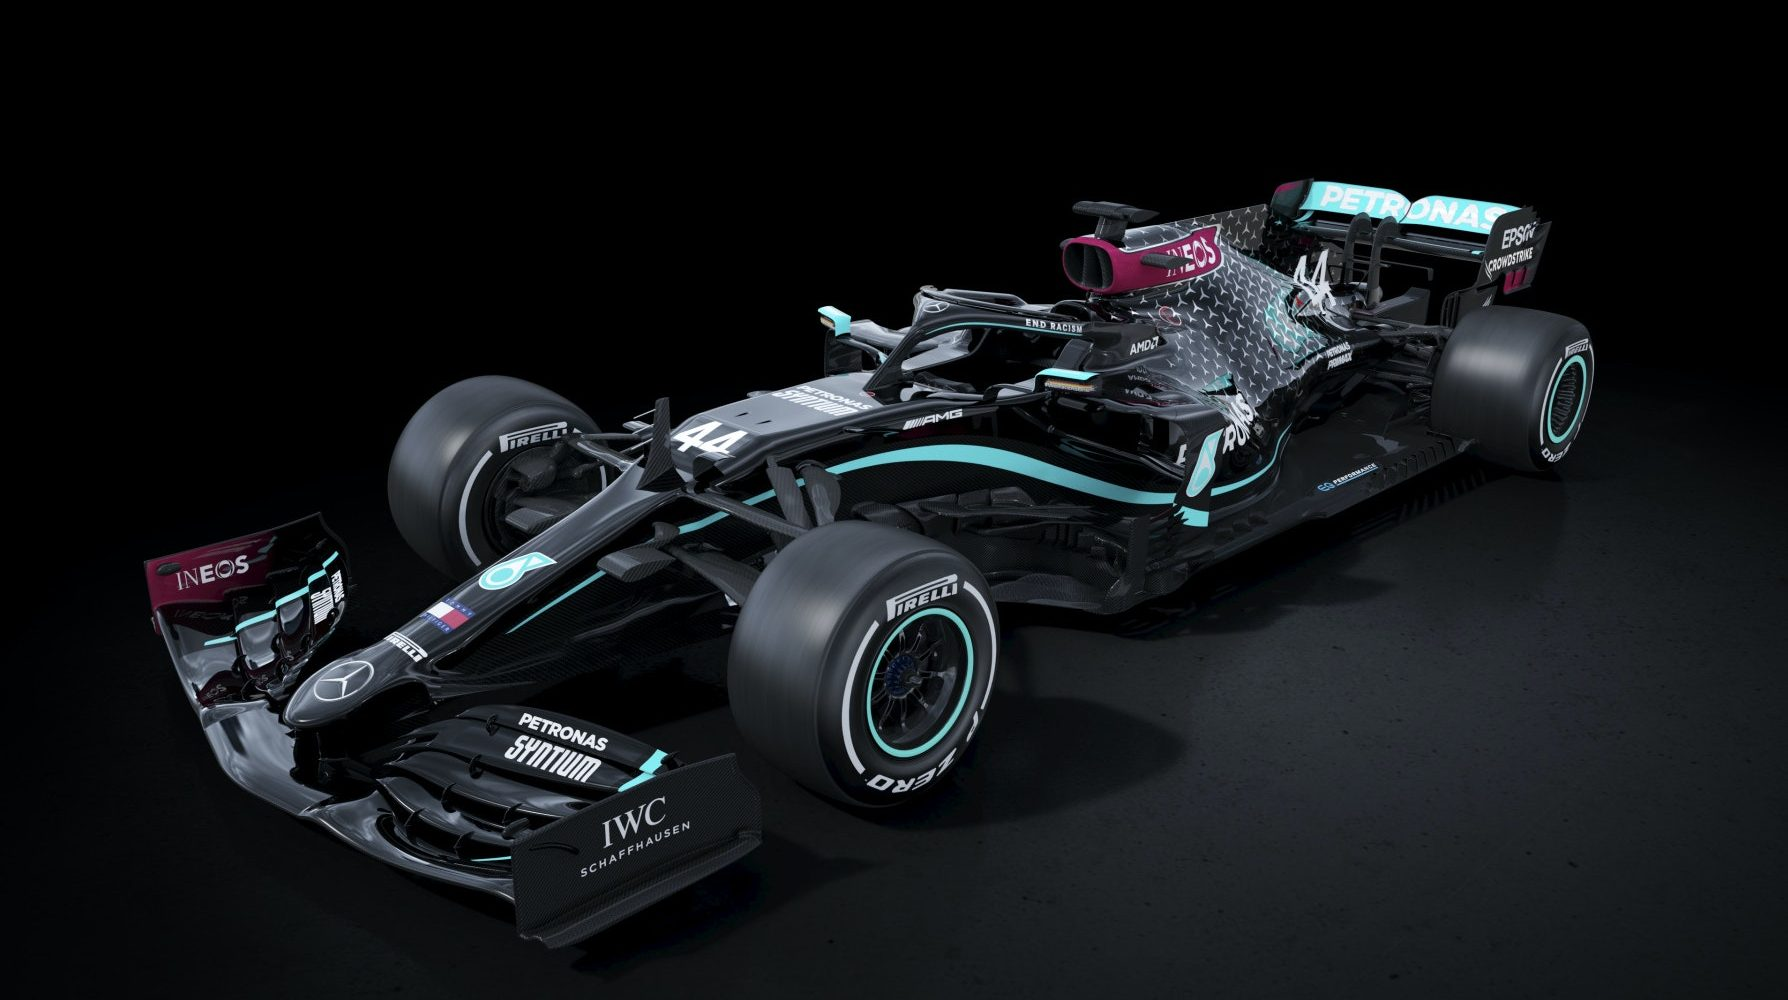 Mercedes F1 team reveals all-black 2020 car in 'stand against racism'